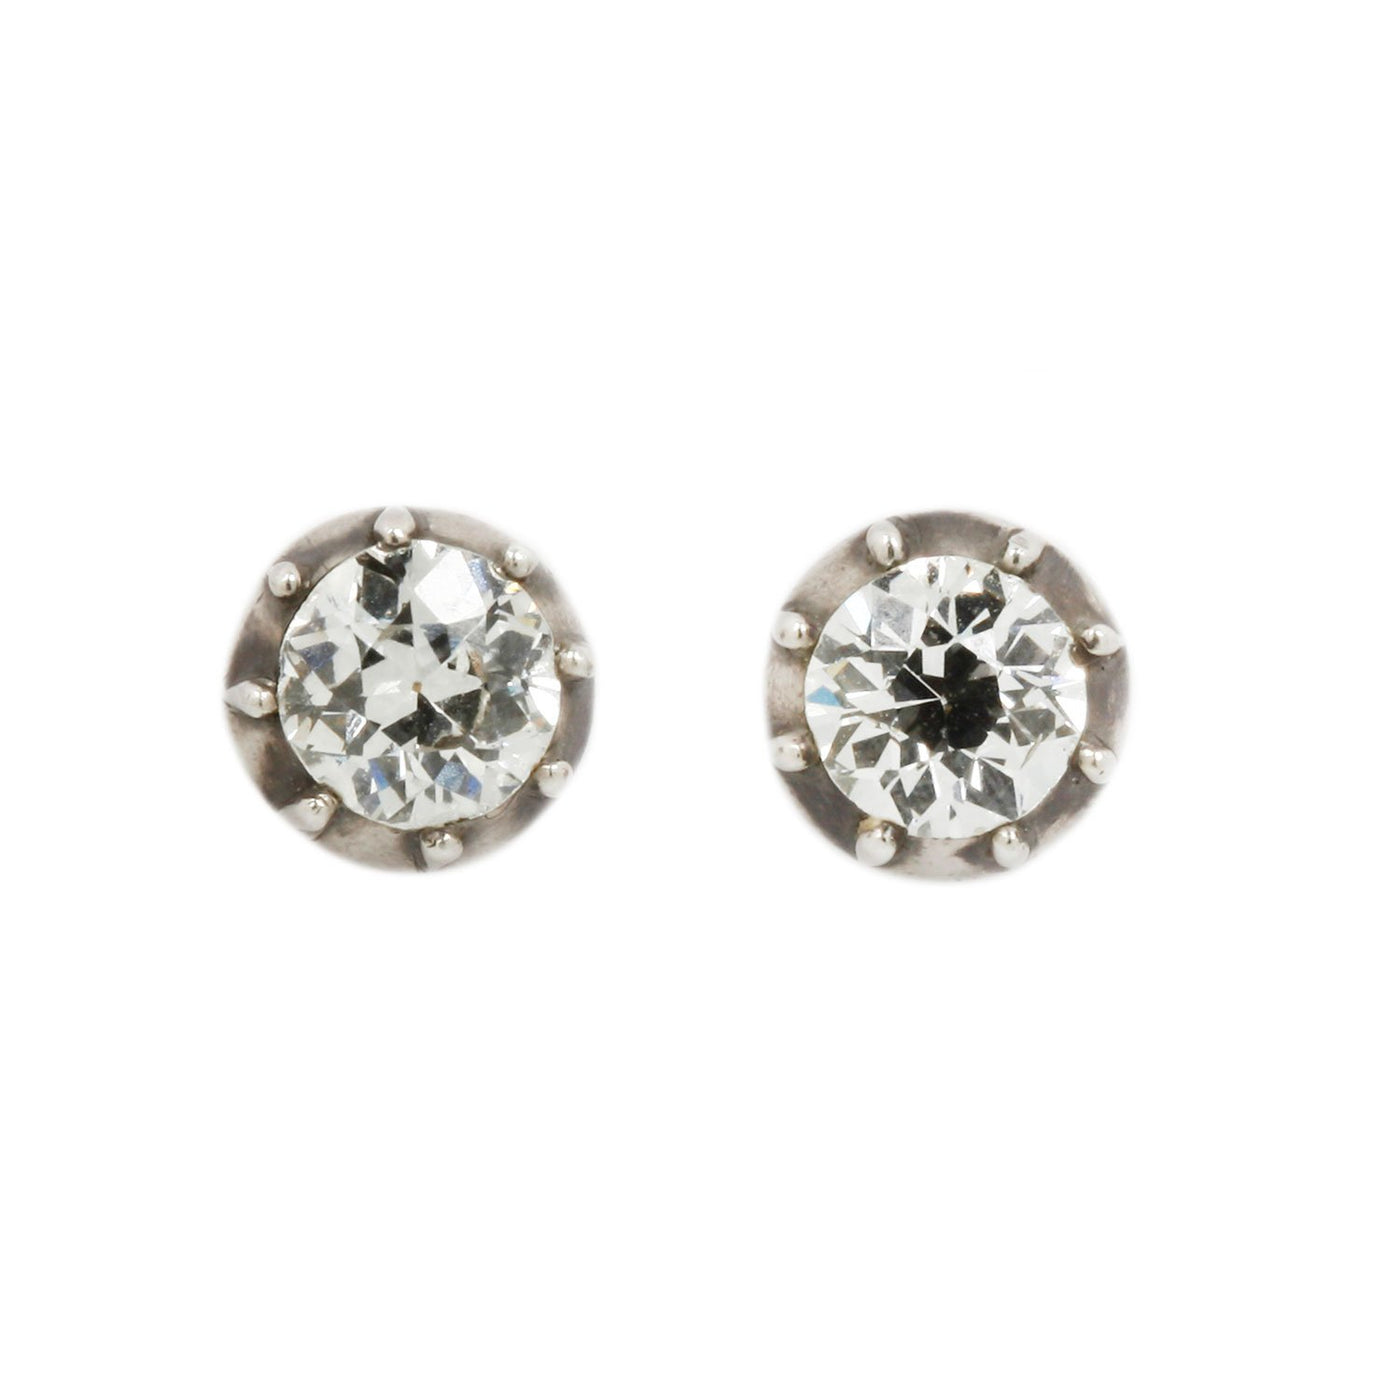 Vintage Gold and Silver Diamond Studs